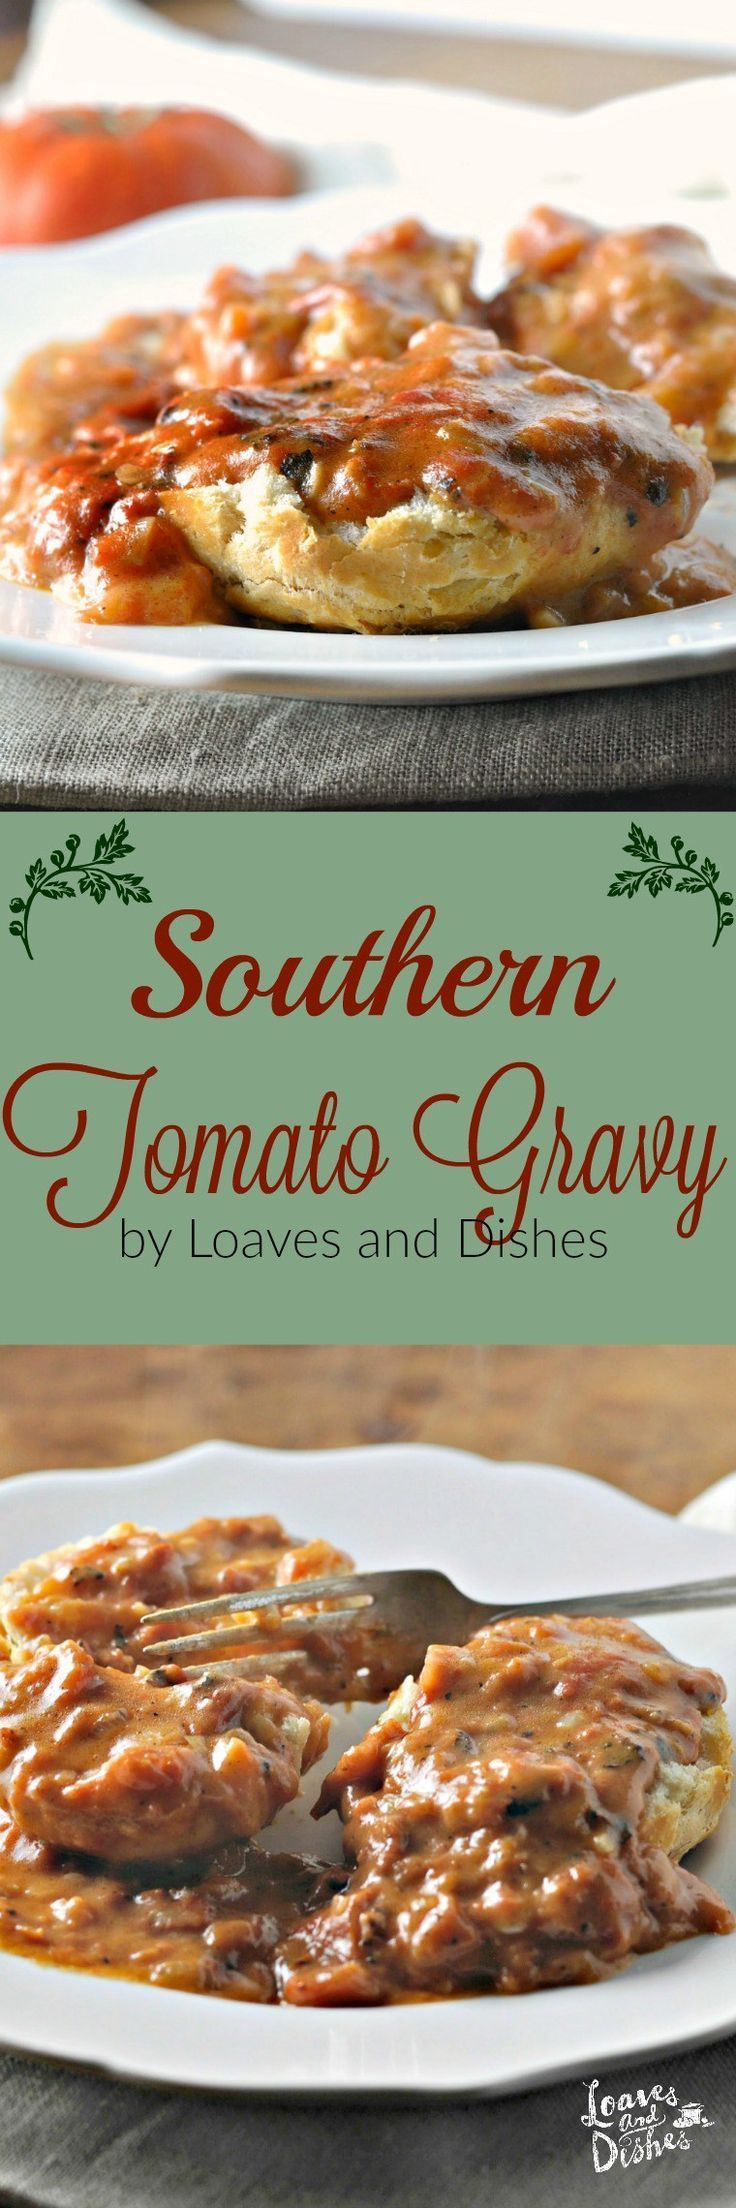 Need a terrific Tomato Gravy Recipe? Of course you do!! Right here it is! Easy, using ingredients you probably have in your kitchen